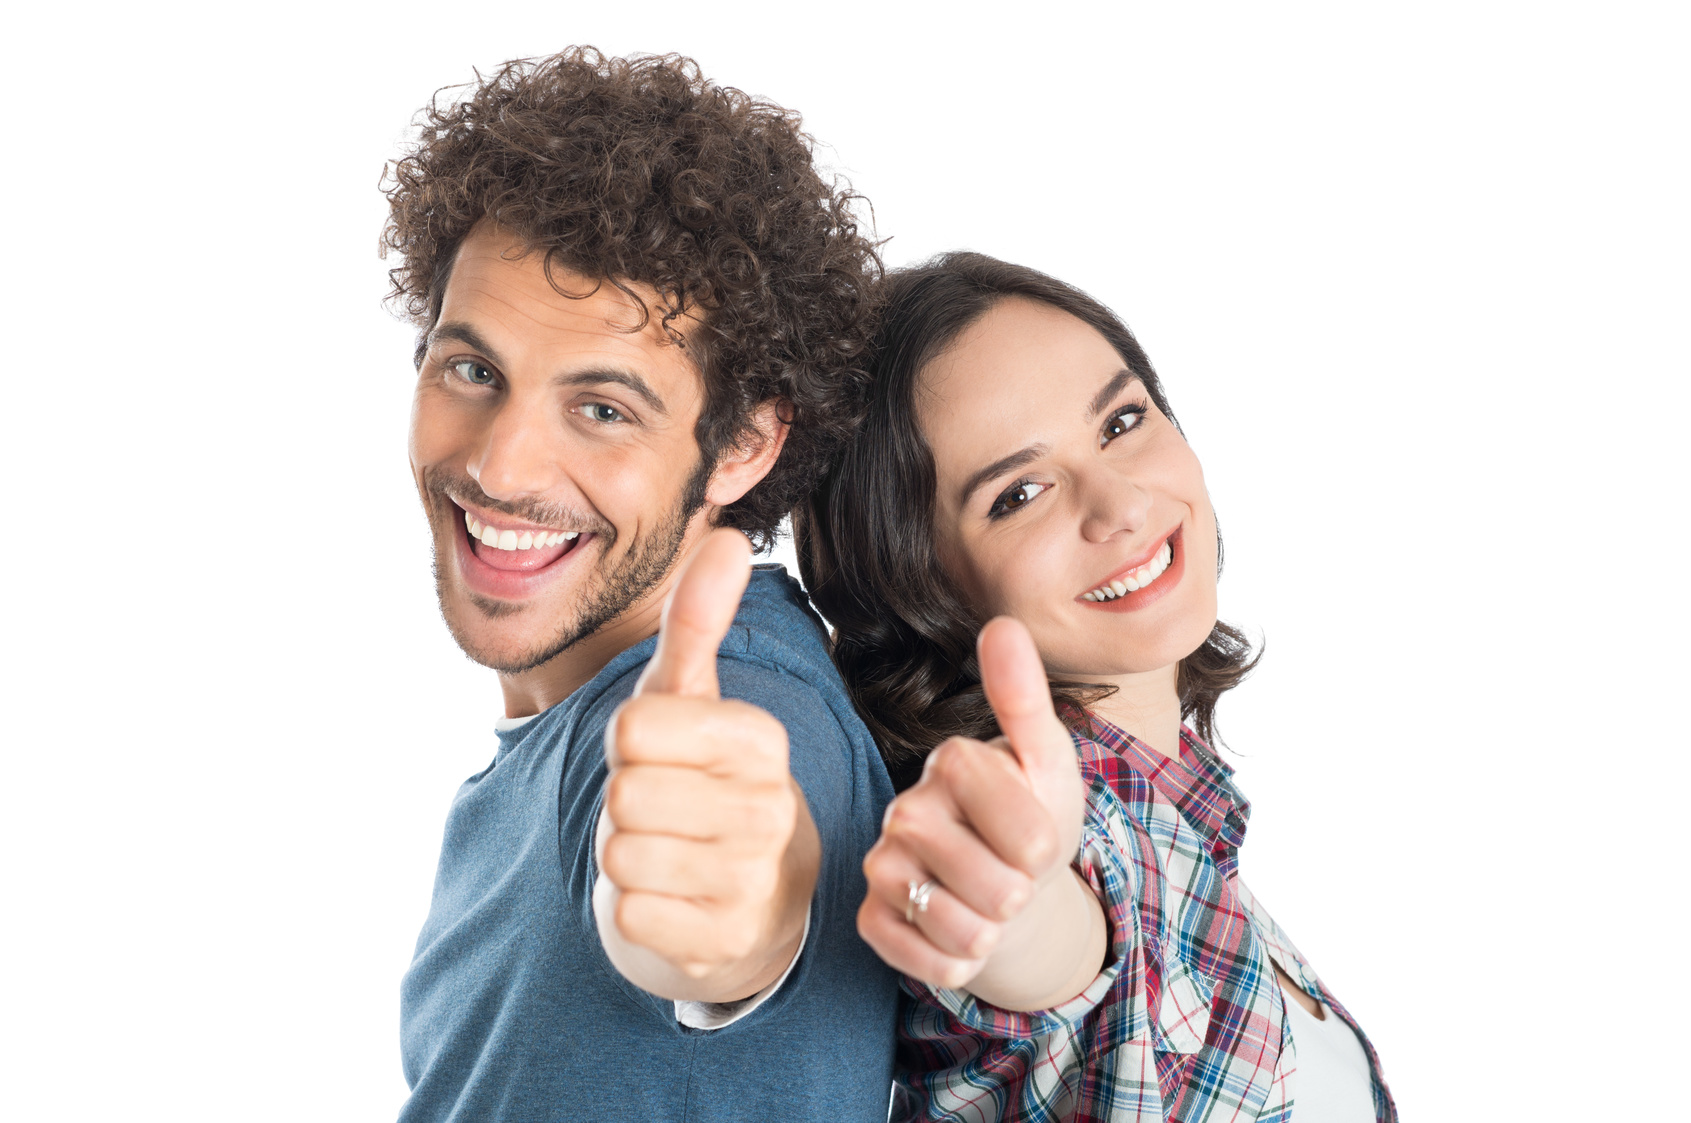 Portrait Of Happy Young Couple Showing Thumb Up Isolated White Background